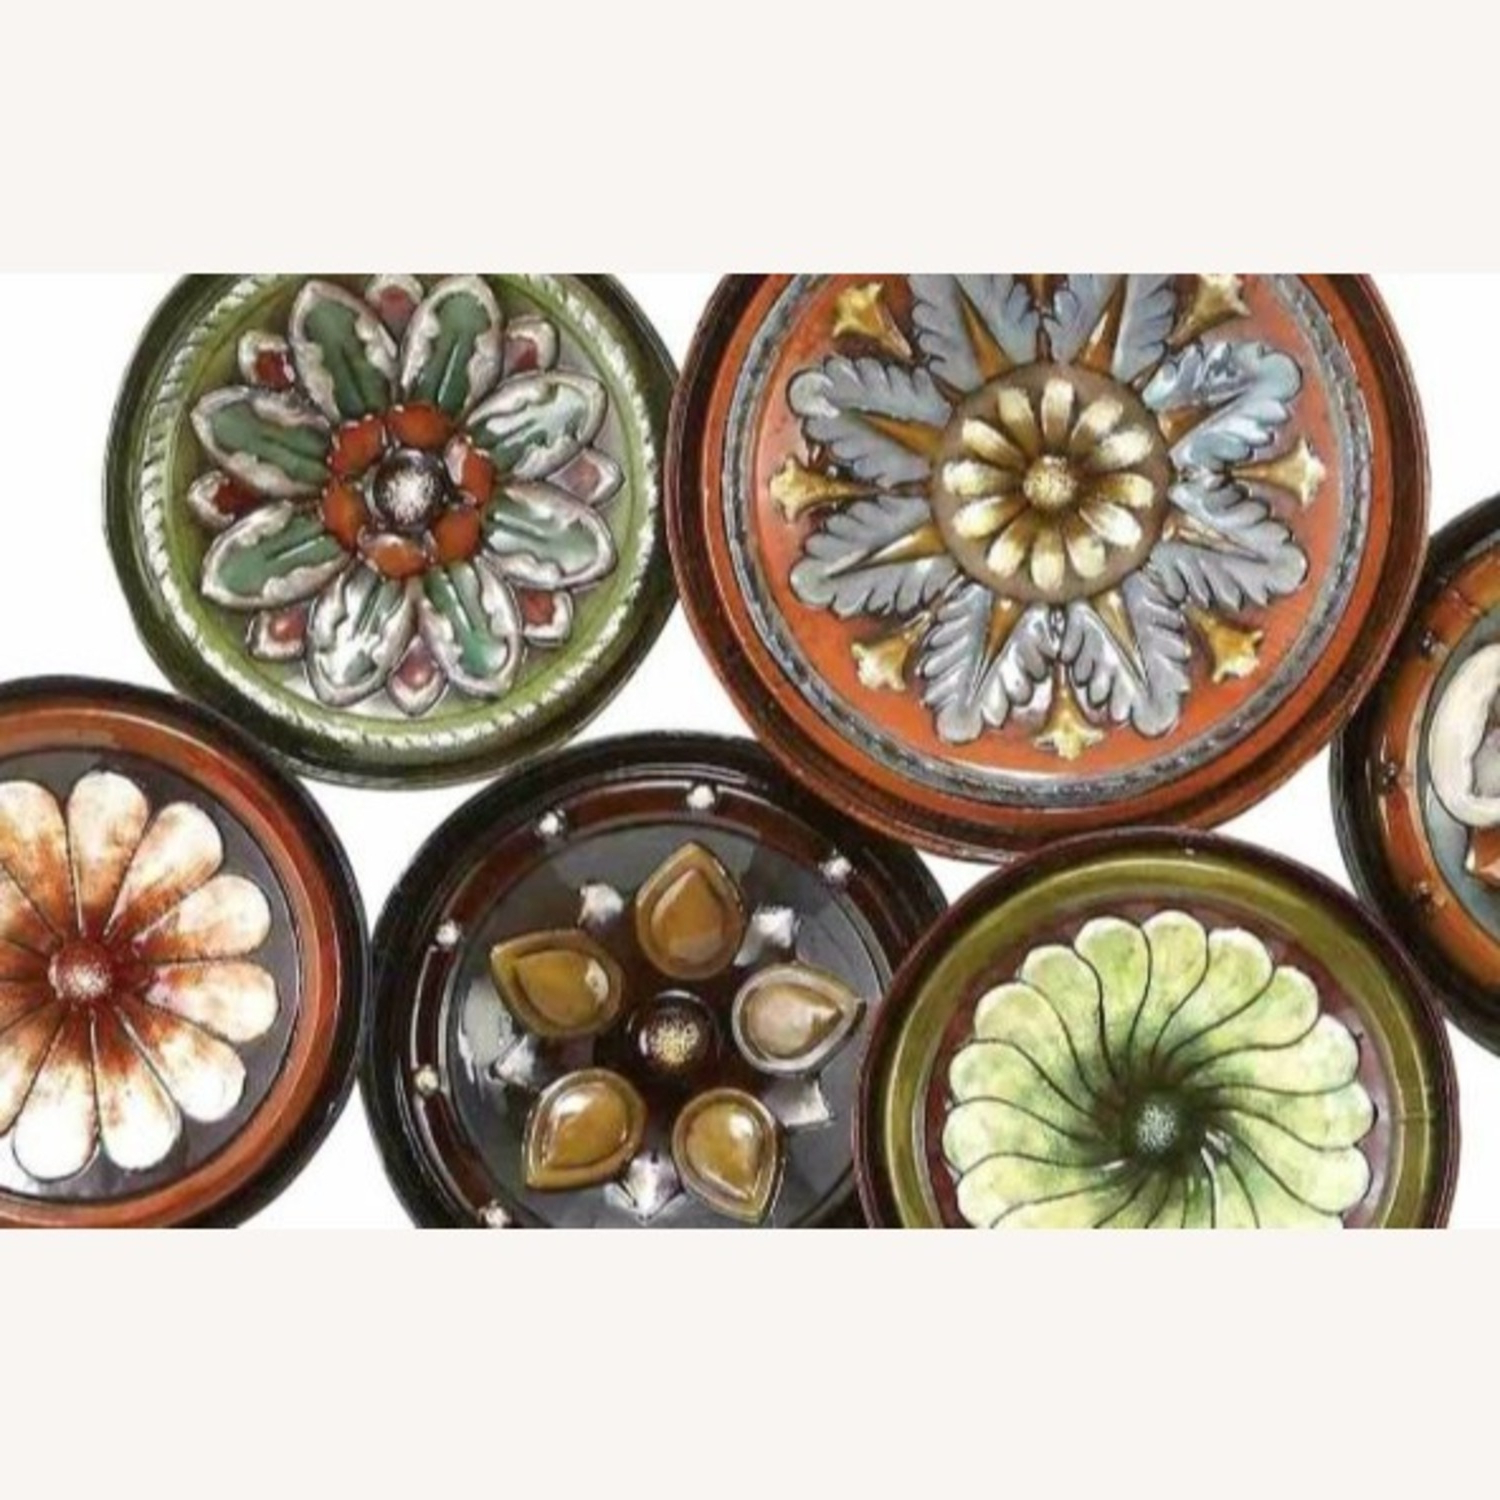 Floral Plate Wall Décor By World Menagerie In Most Current Wolrd Menagerie Multi Color Floral Plates Wall Decor (View 12 of 20)